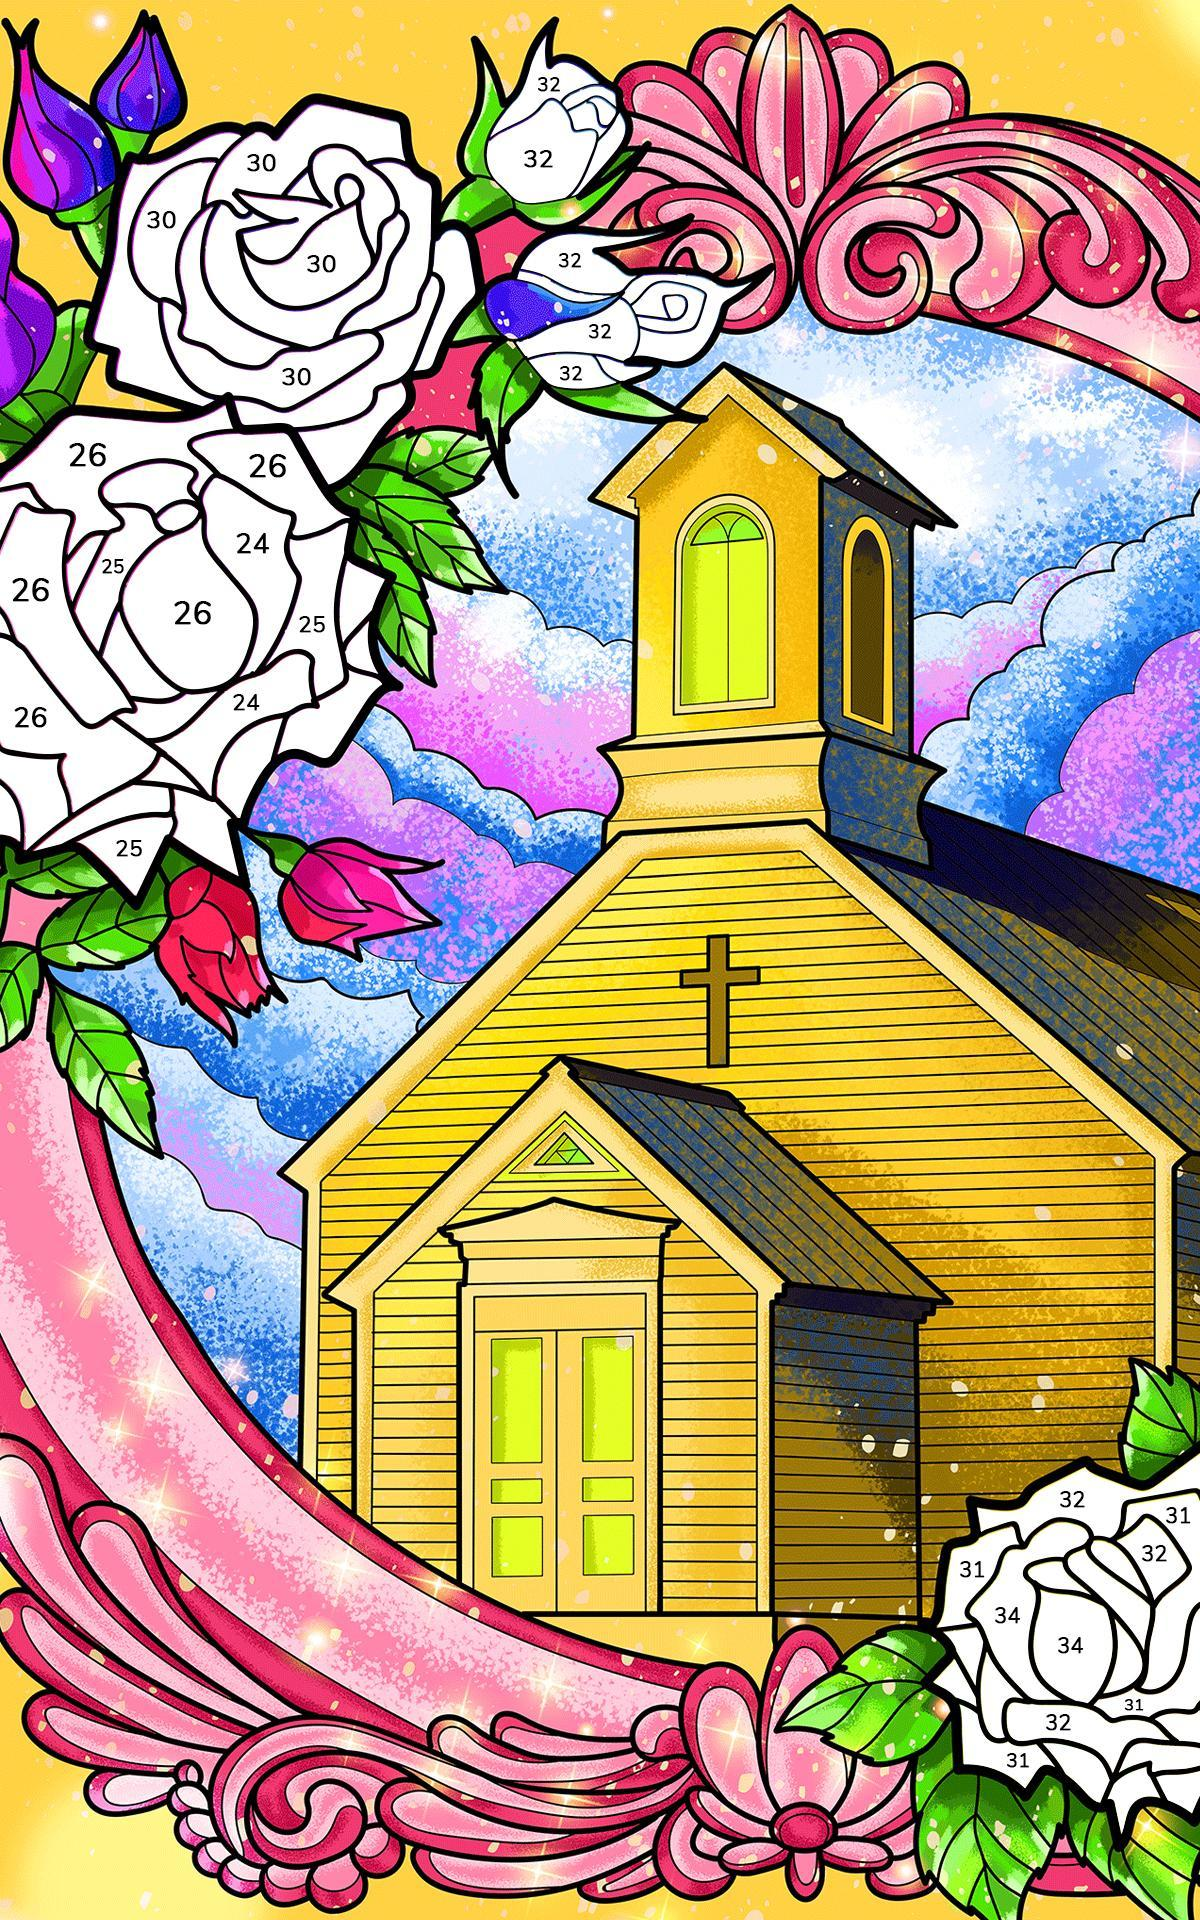 Bible Coloring Paint by Number, Free Bible Games 2.1.14 Screenshot 15